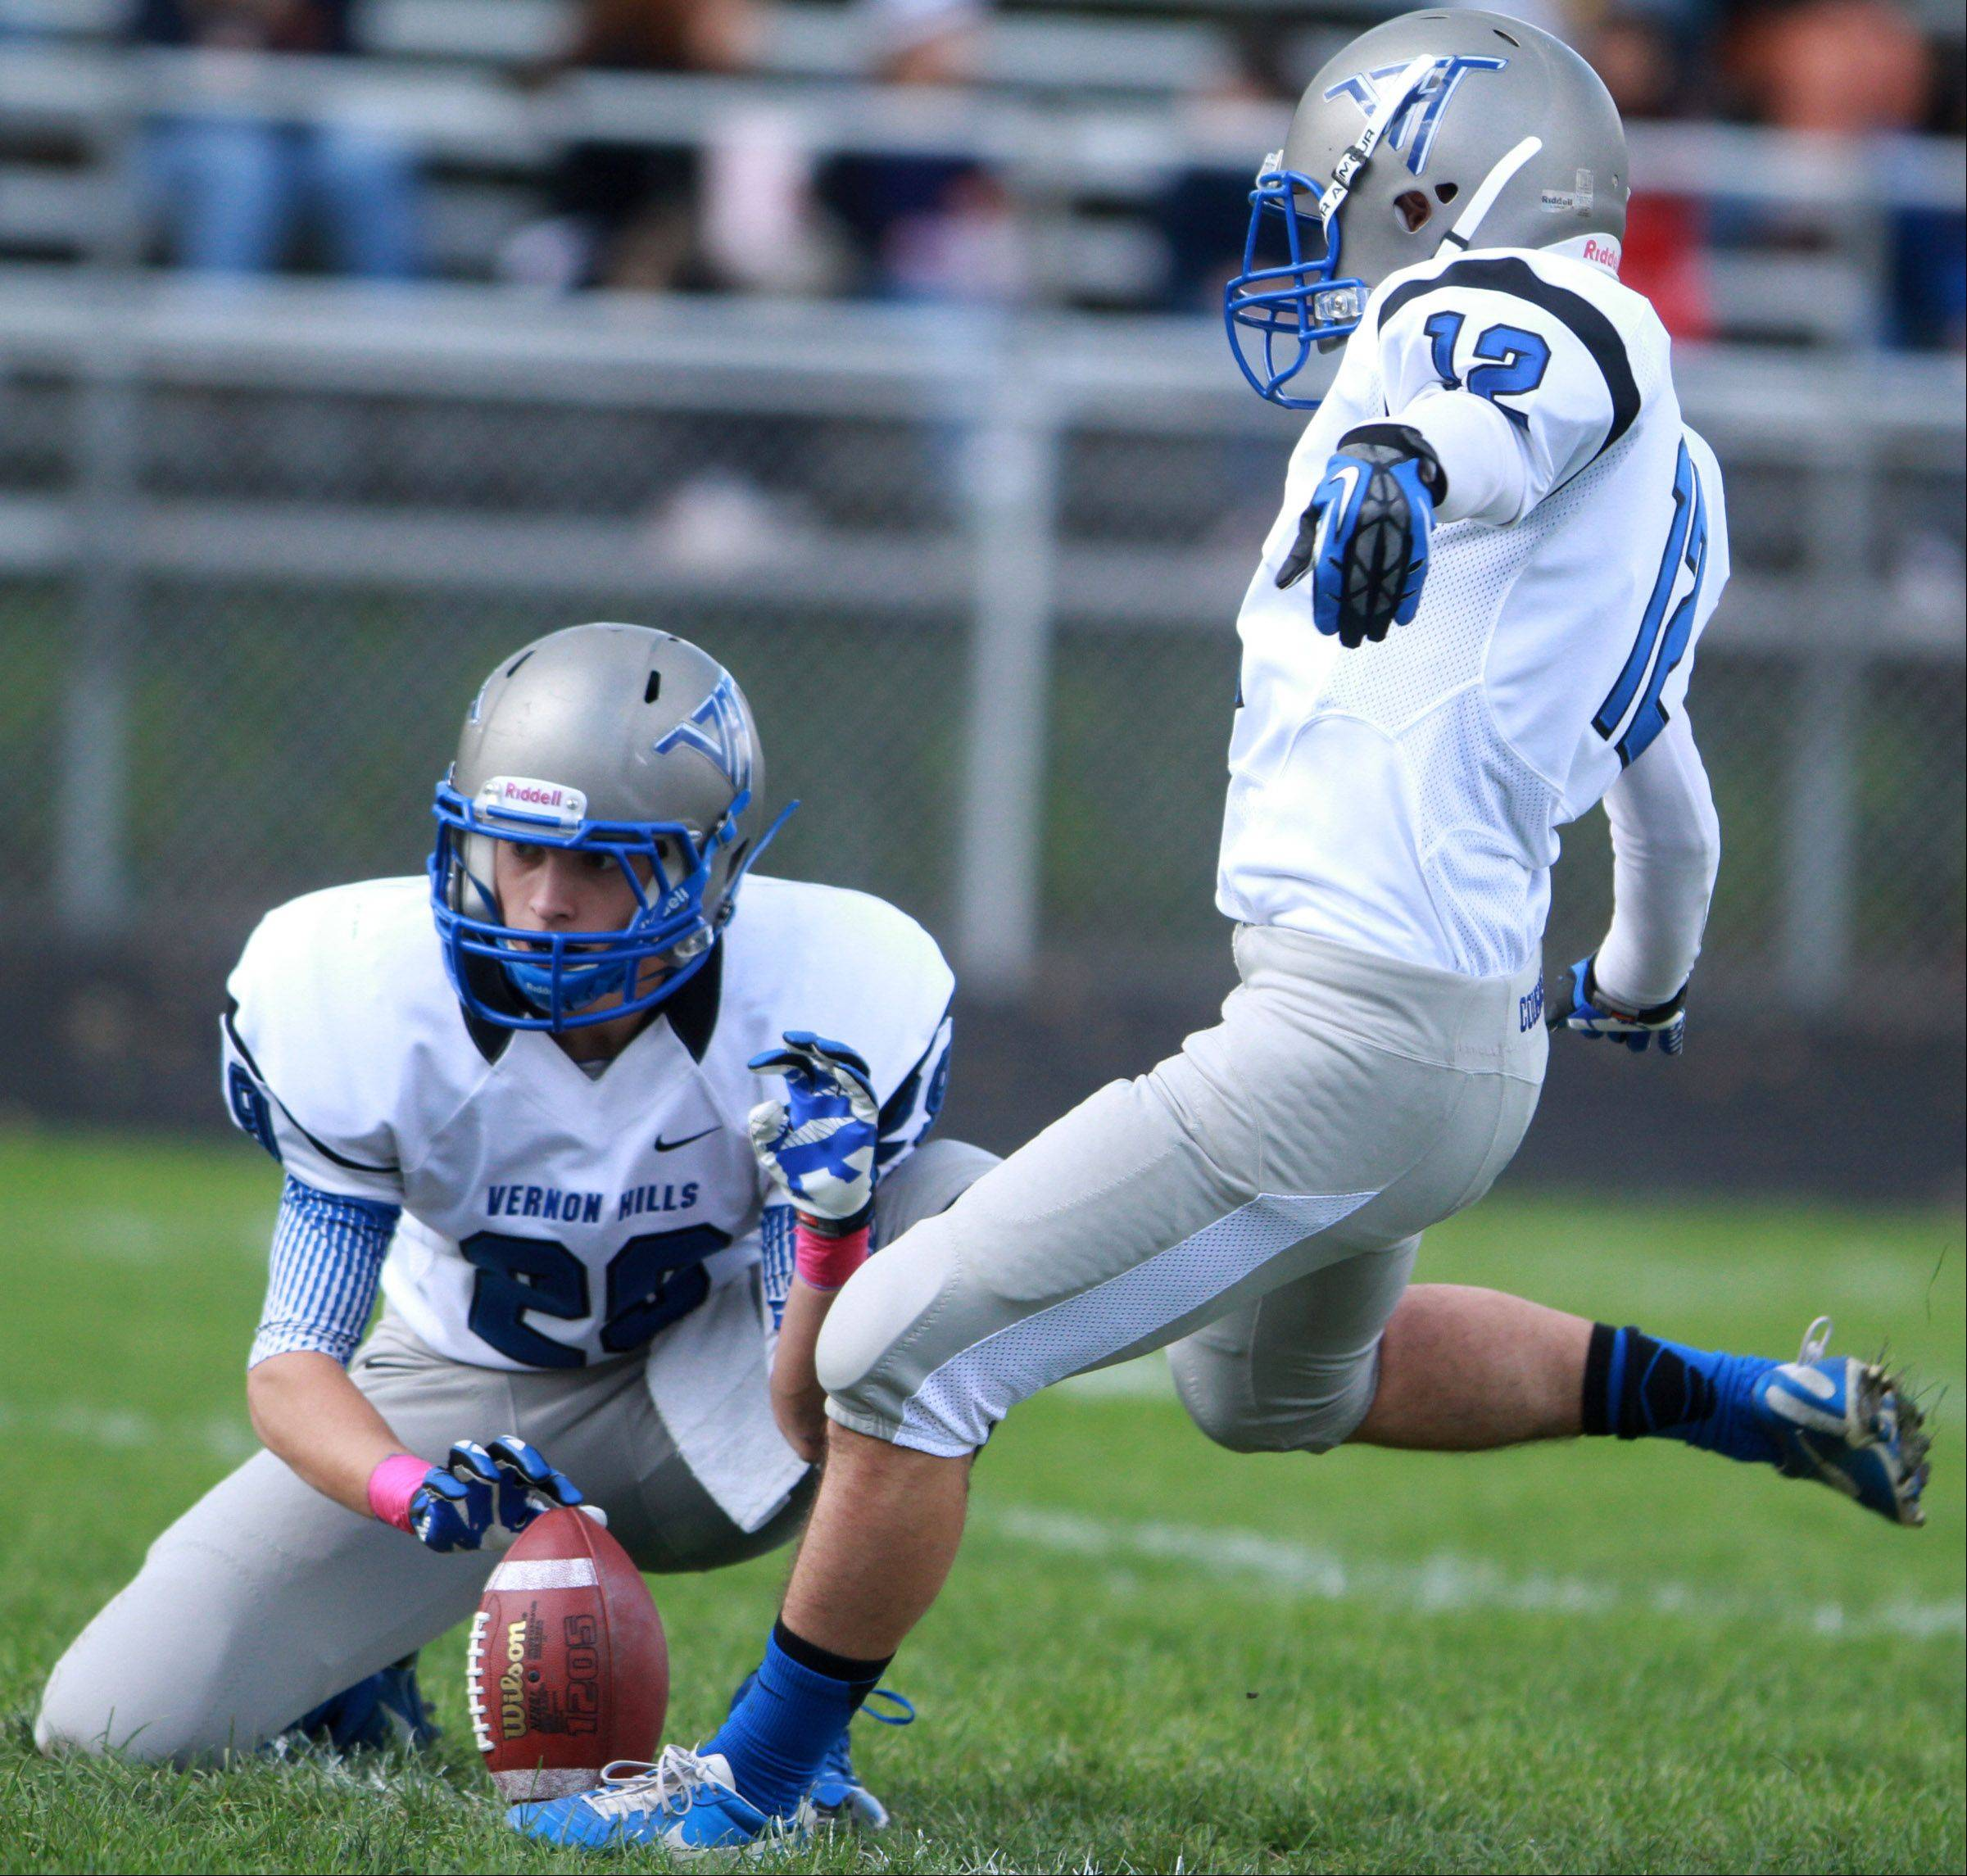 Vernon Hills kicker Jeremy Cohen kicks an extra point with Mike Mariella holding against Round Lake defender at Round Lake on Saturday, October 19.